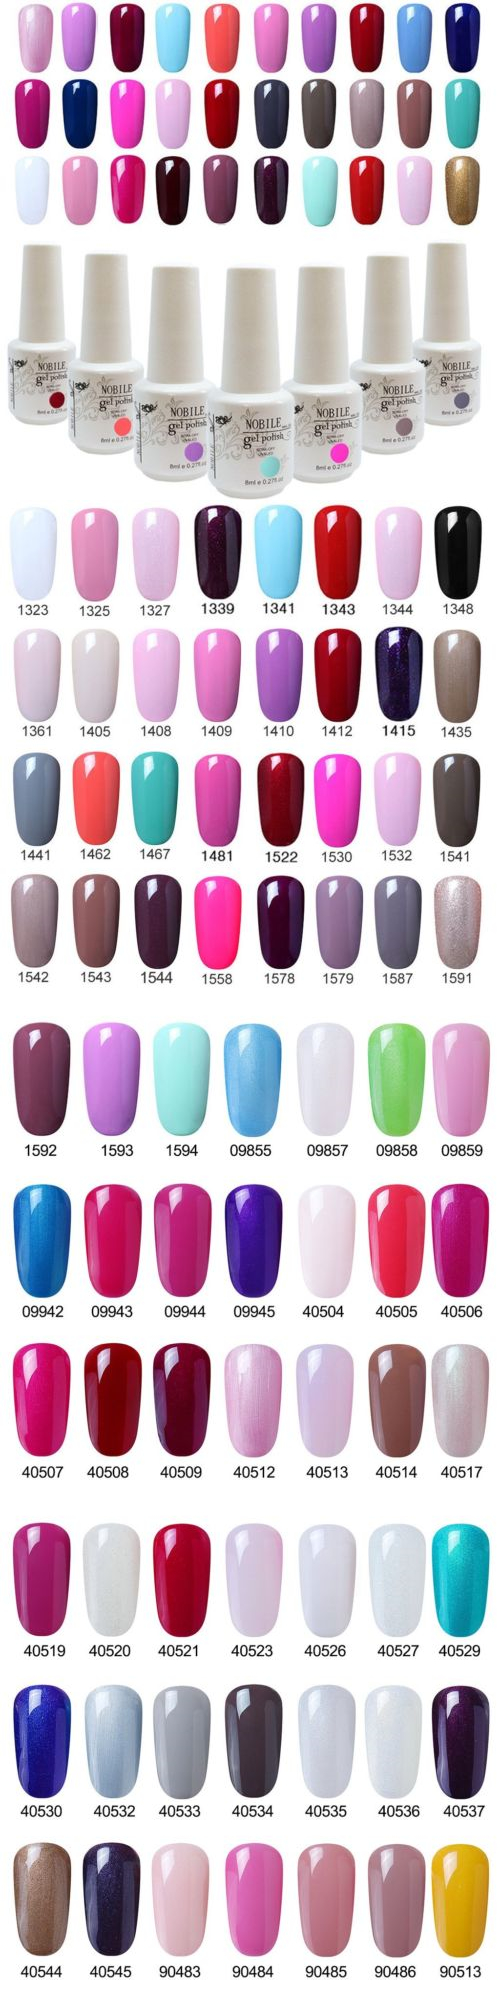 Gel Nails: Nobile 8Ml Soak-Off Uvandled Gel Polish Nail Art Gel Nail ...